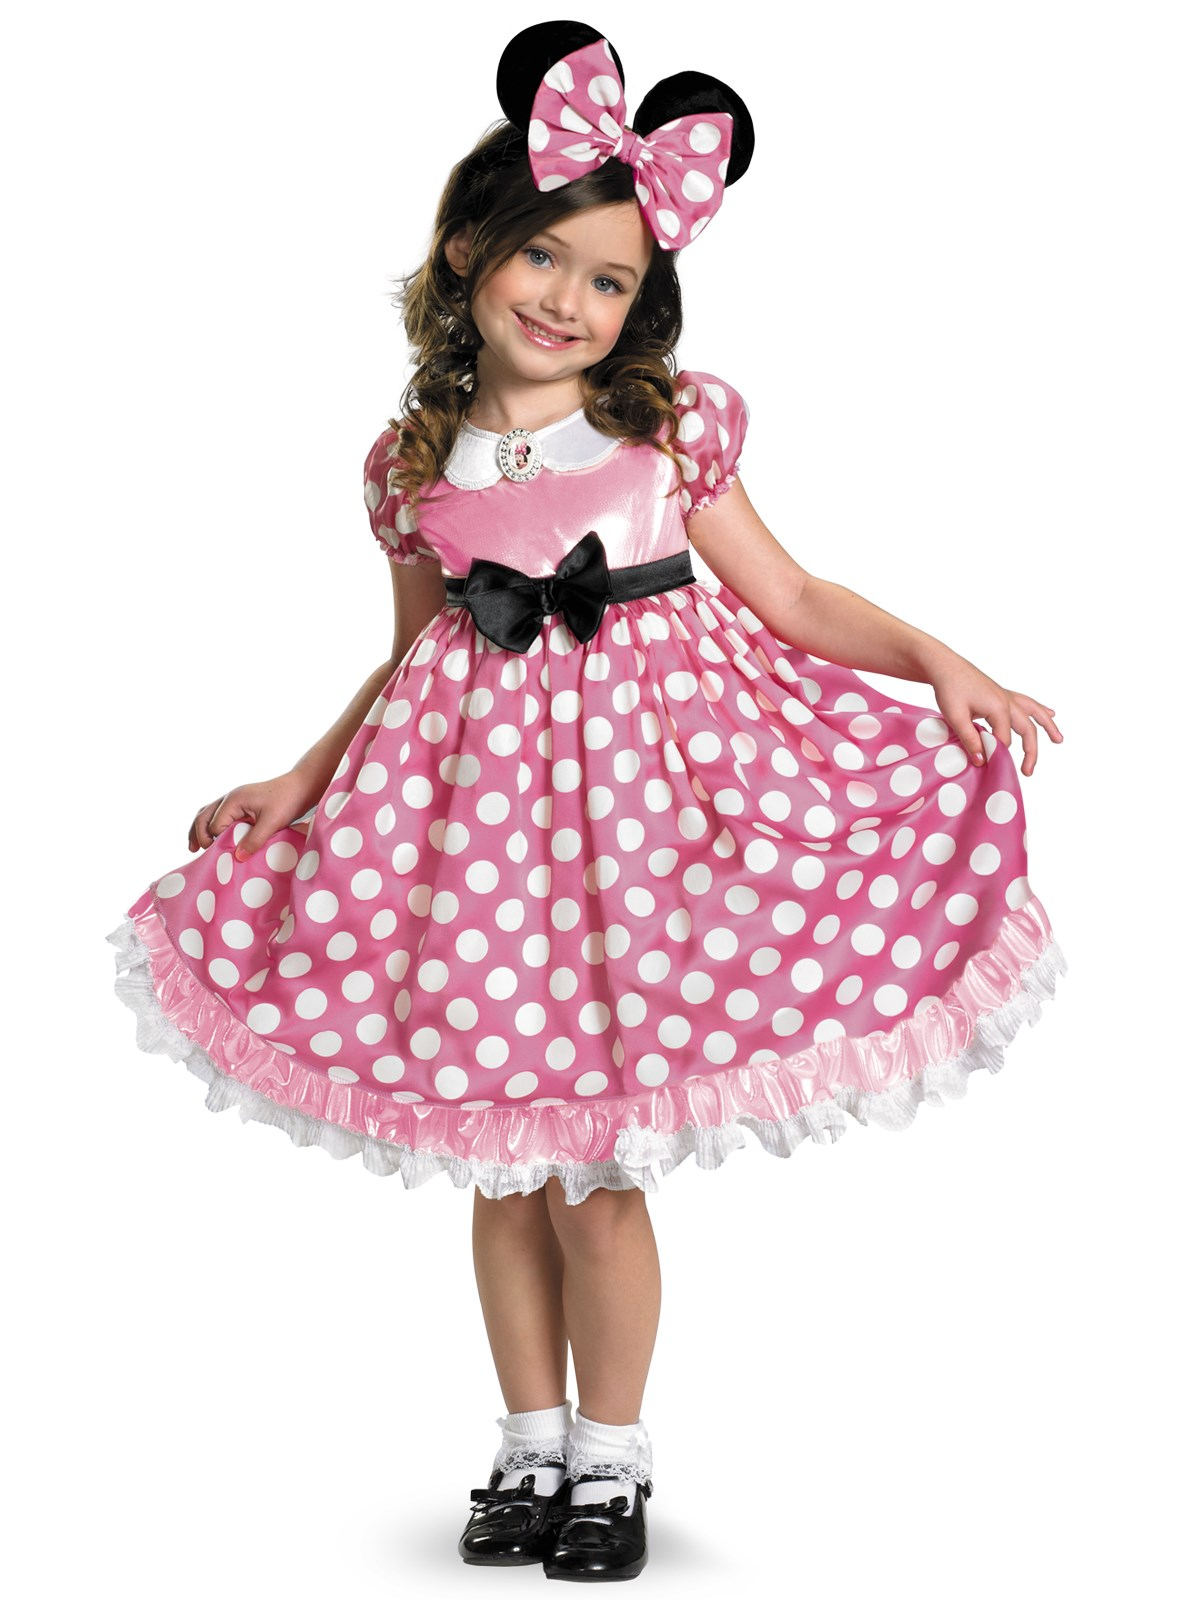 Disney Mickey Mouse Clubhouse Pink Minnie Mouse Glow in the Dark Toddler Costume 3T/4T